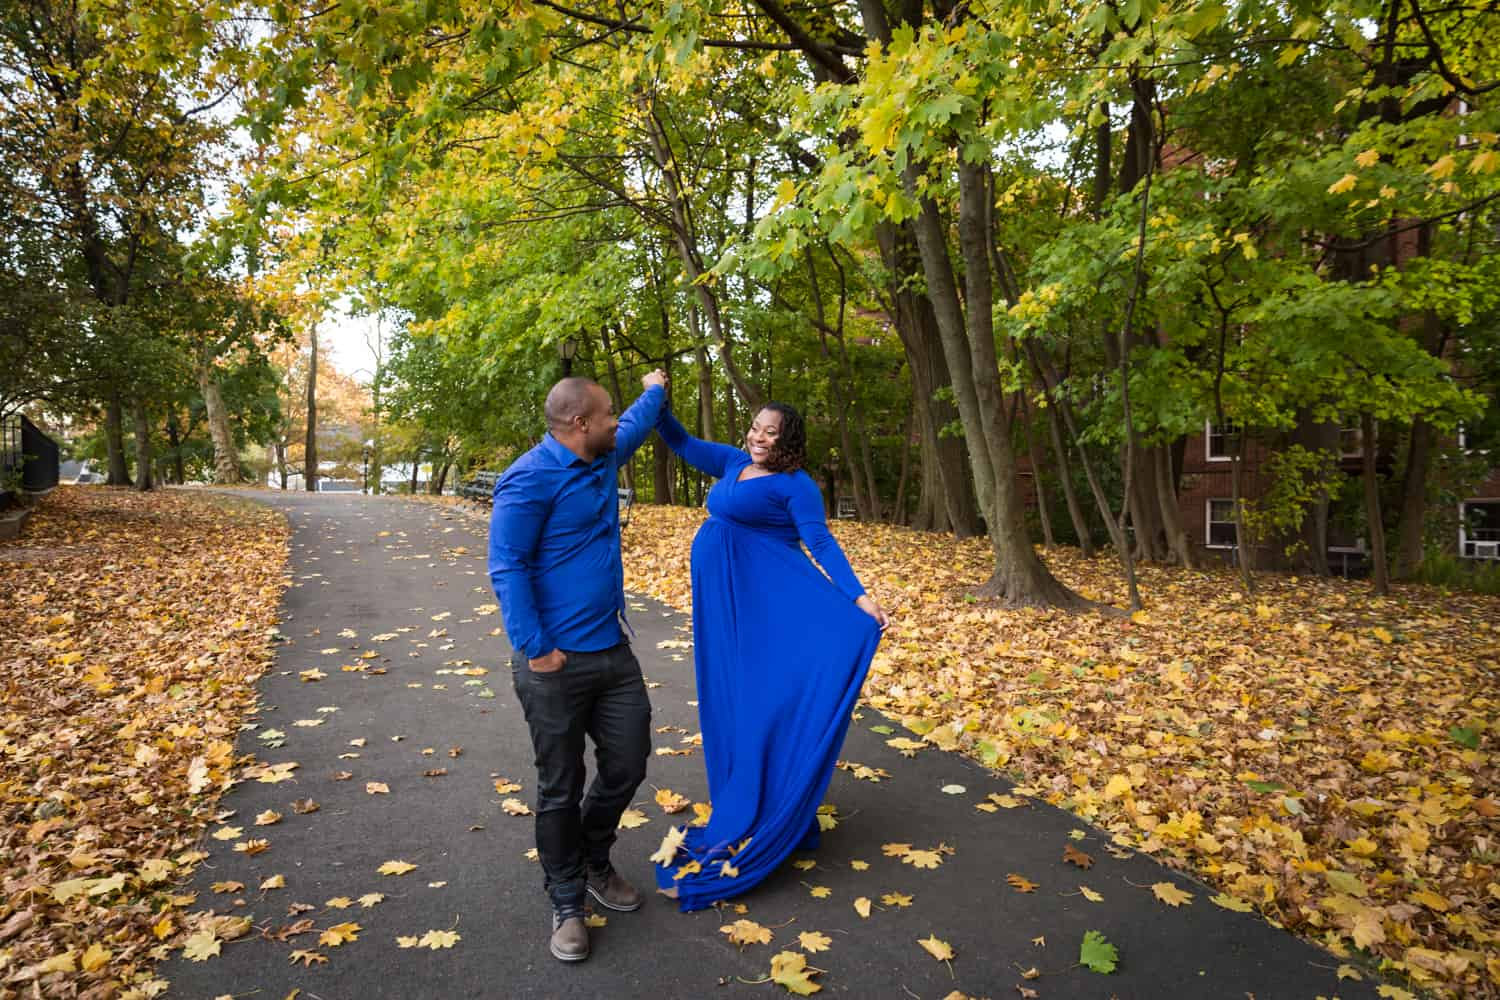 African American couple dancing in Forest Park for an article on maternity photo shoot ideas